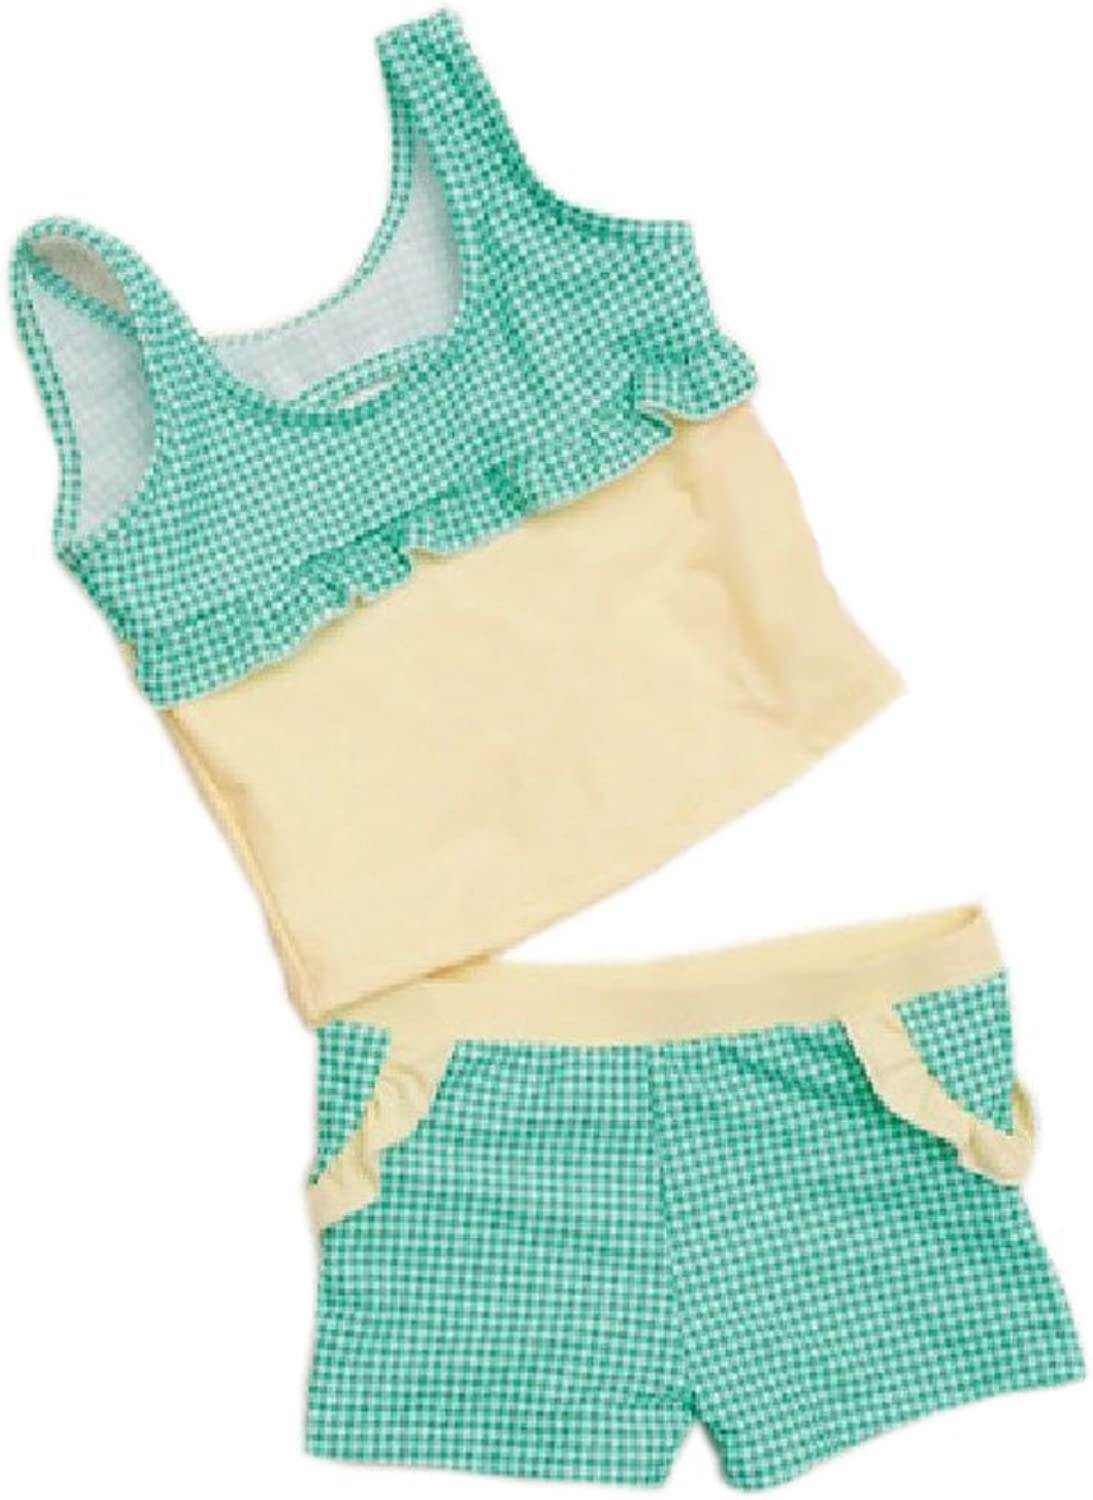 2 Pieces Swimsuit Bathing Suit Tank Aqua Tartan, Girl, 80100CM, 36 Years Old